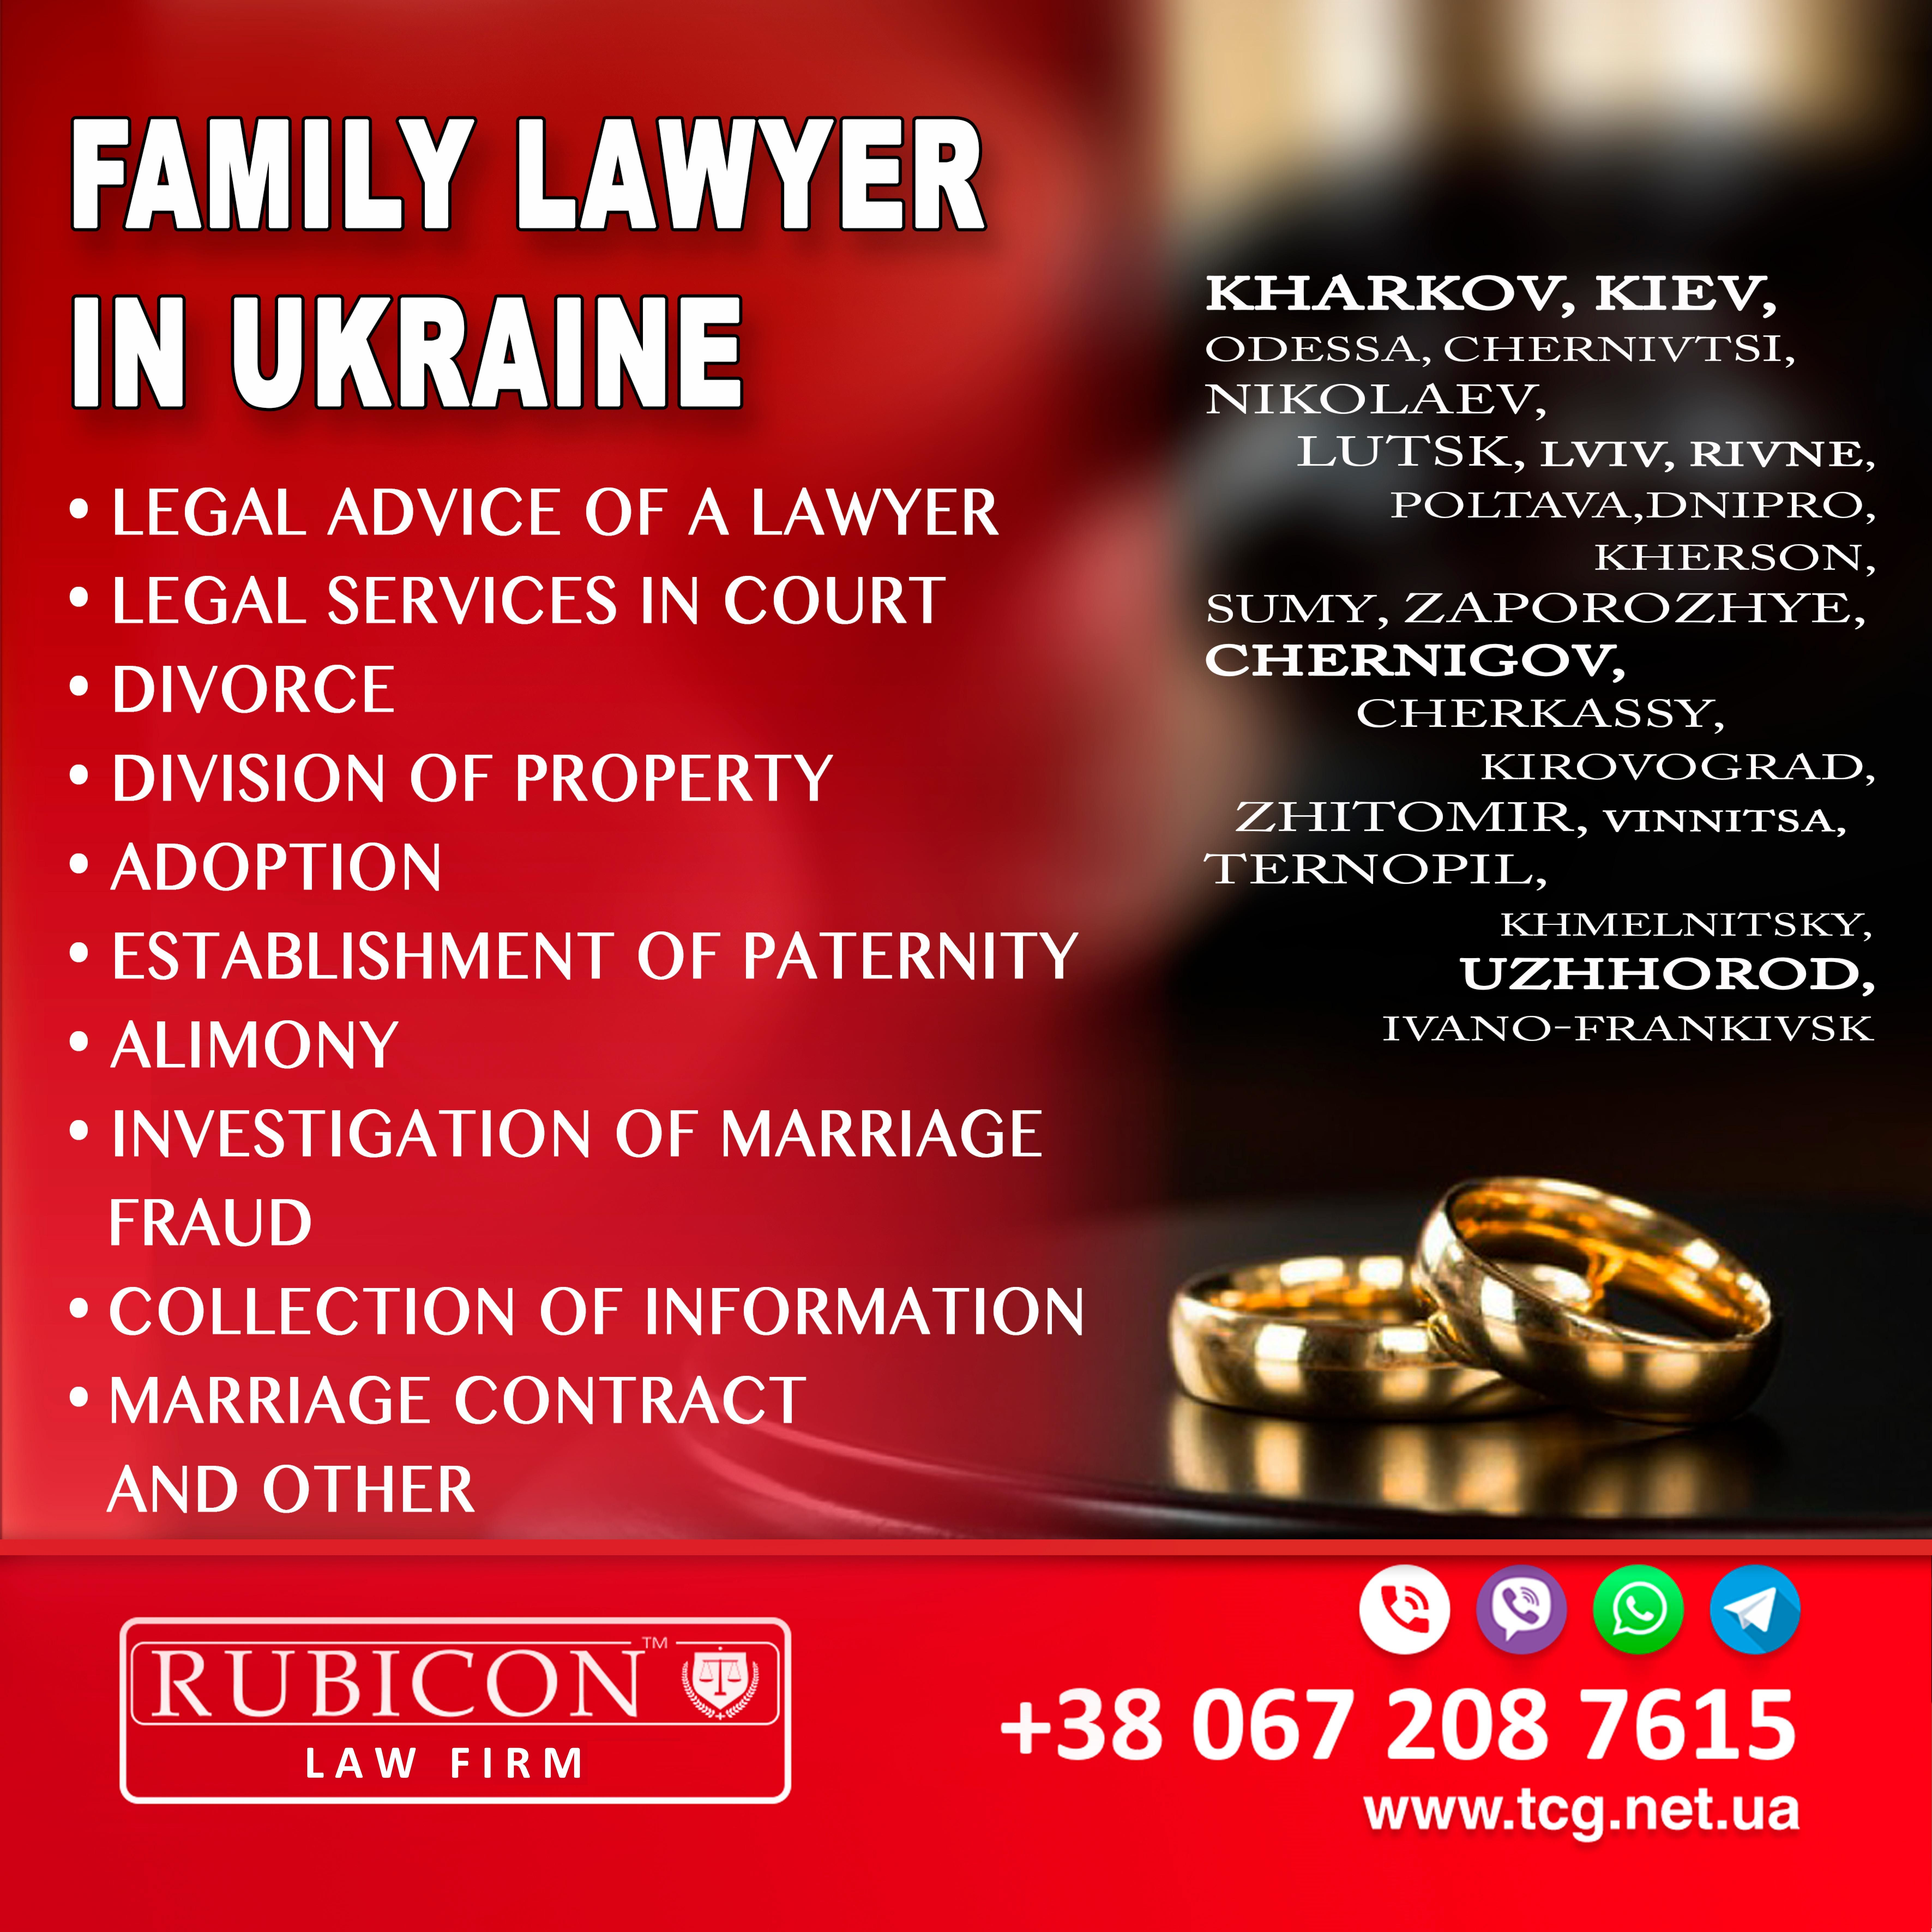 Lawyer On Family Law In Ukraine